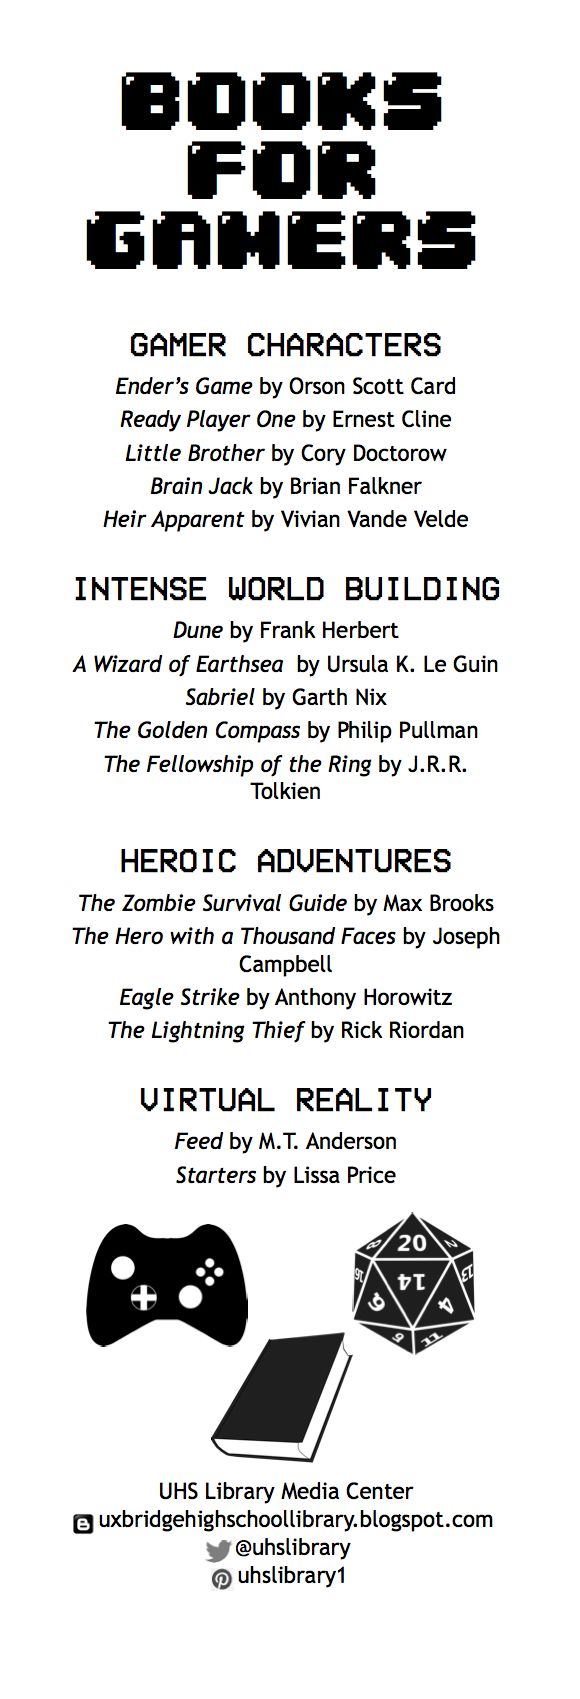 Bookmark: Books for Gamers